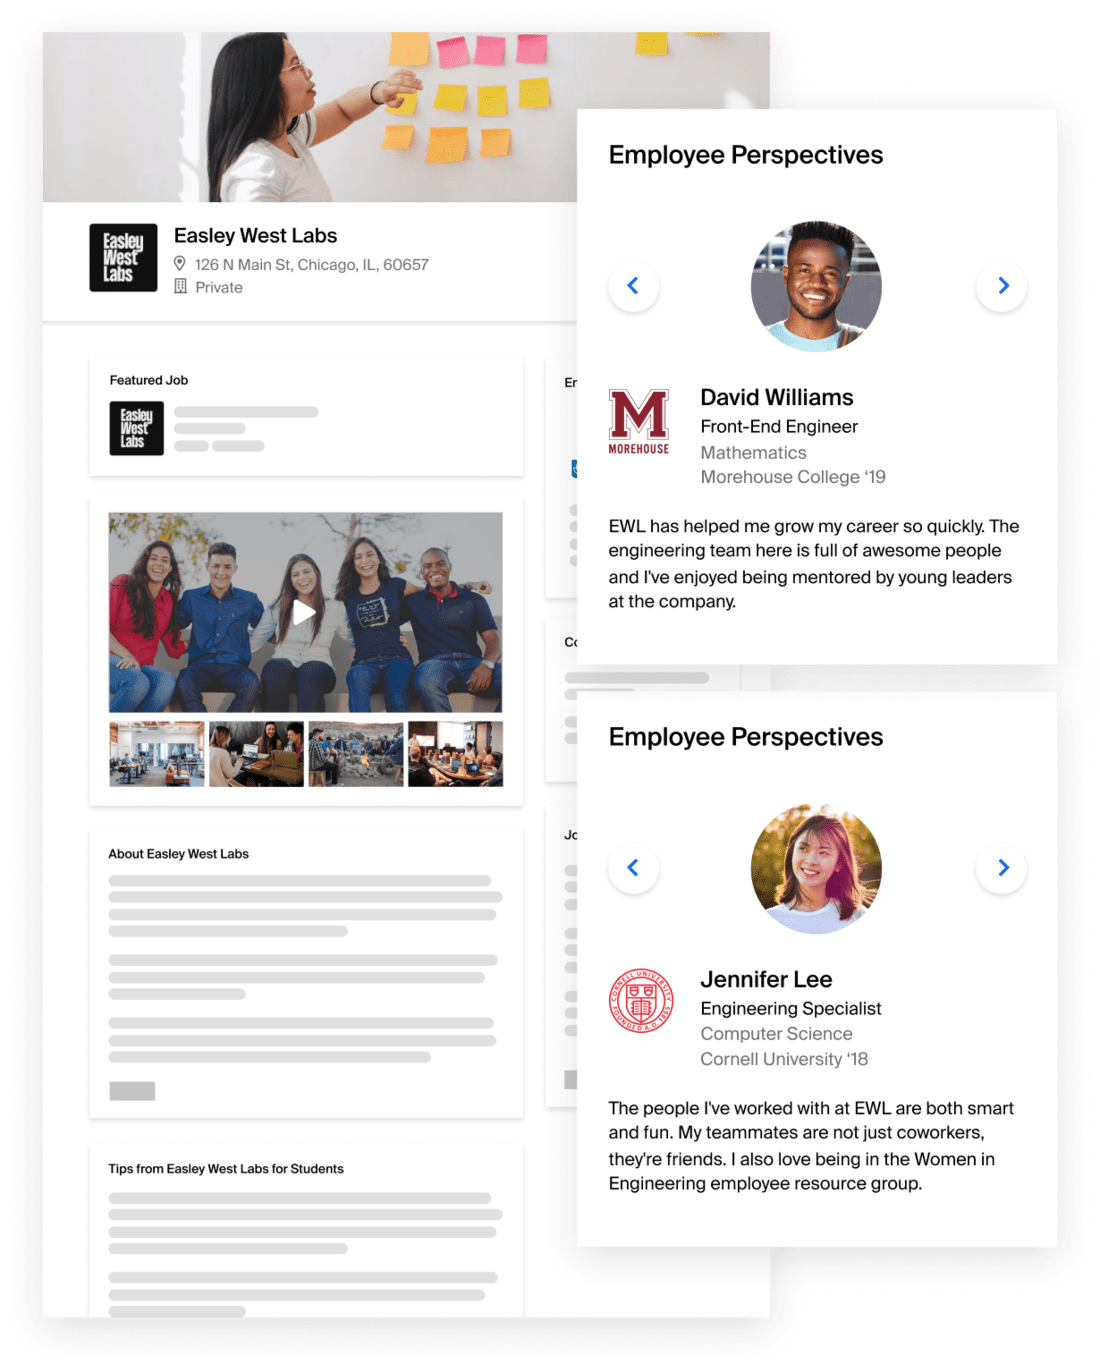 Employer pages on Handshake feature jobs, rich video and photos highlighting company culture, and employee testimonials from real students and recent graduates.